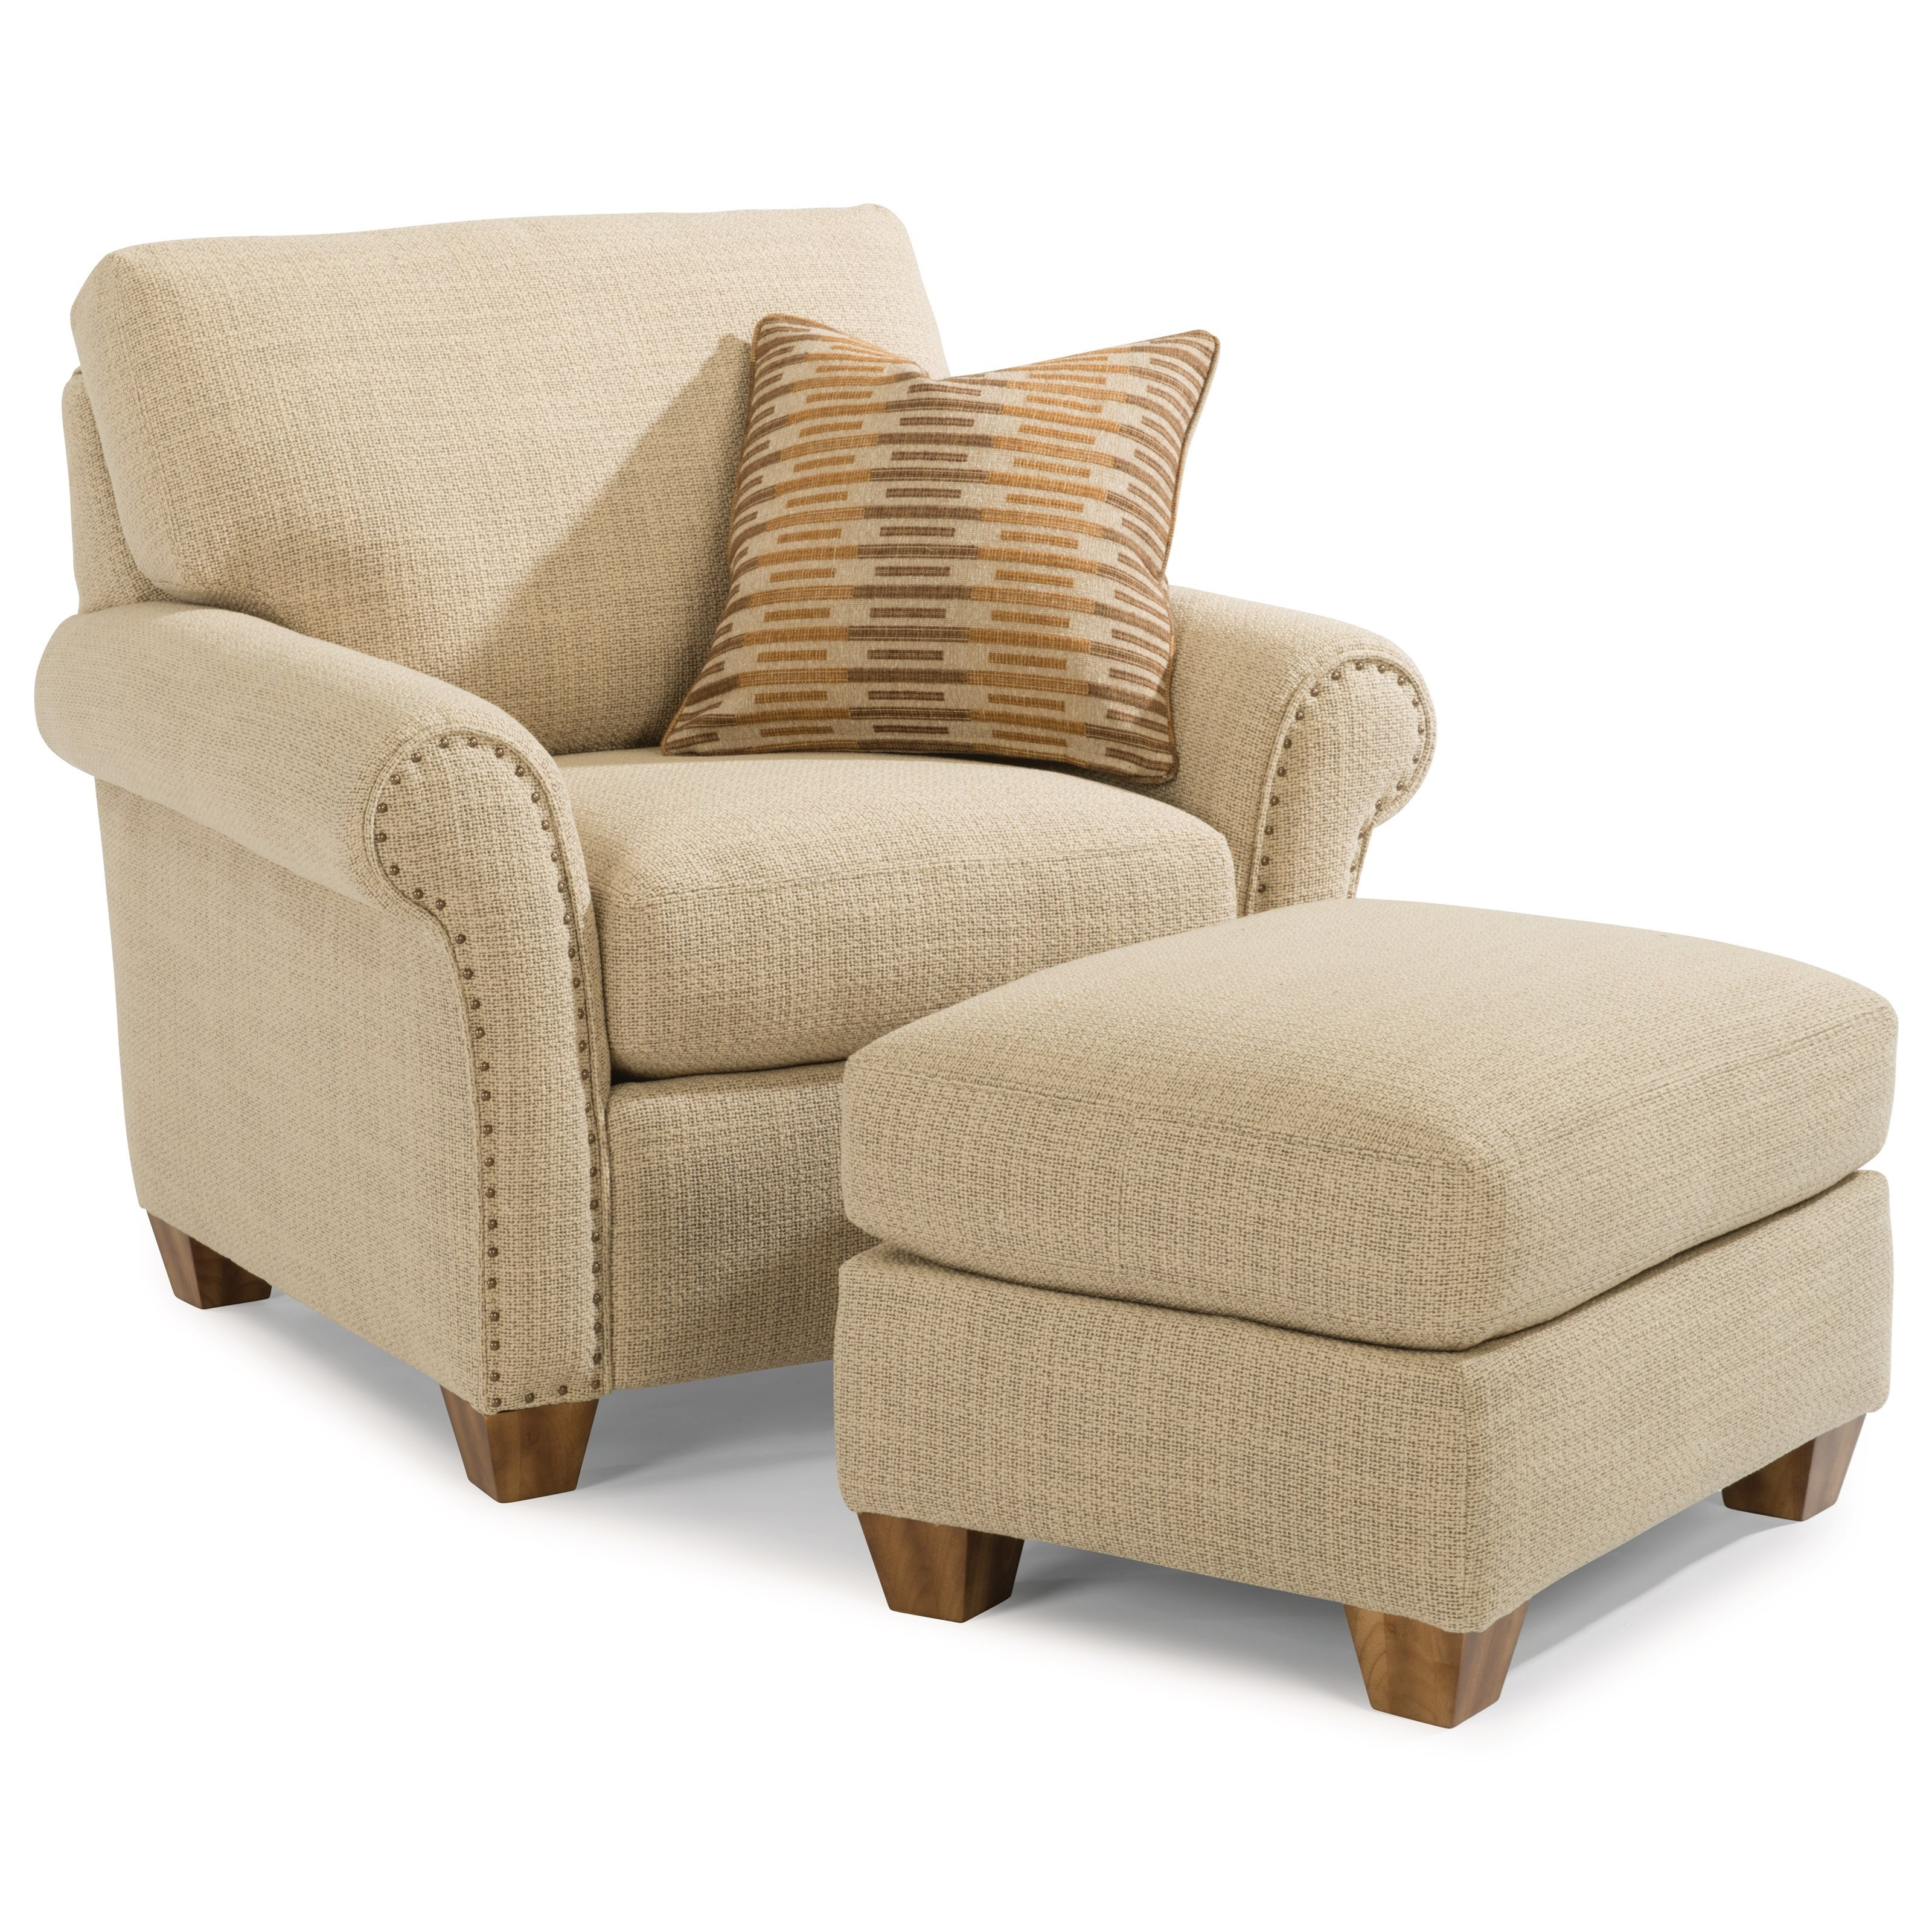 Flexsteel Christine Rolled Arm Chair and Ottoman Set with Nailhead